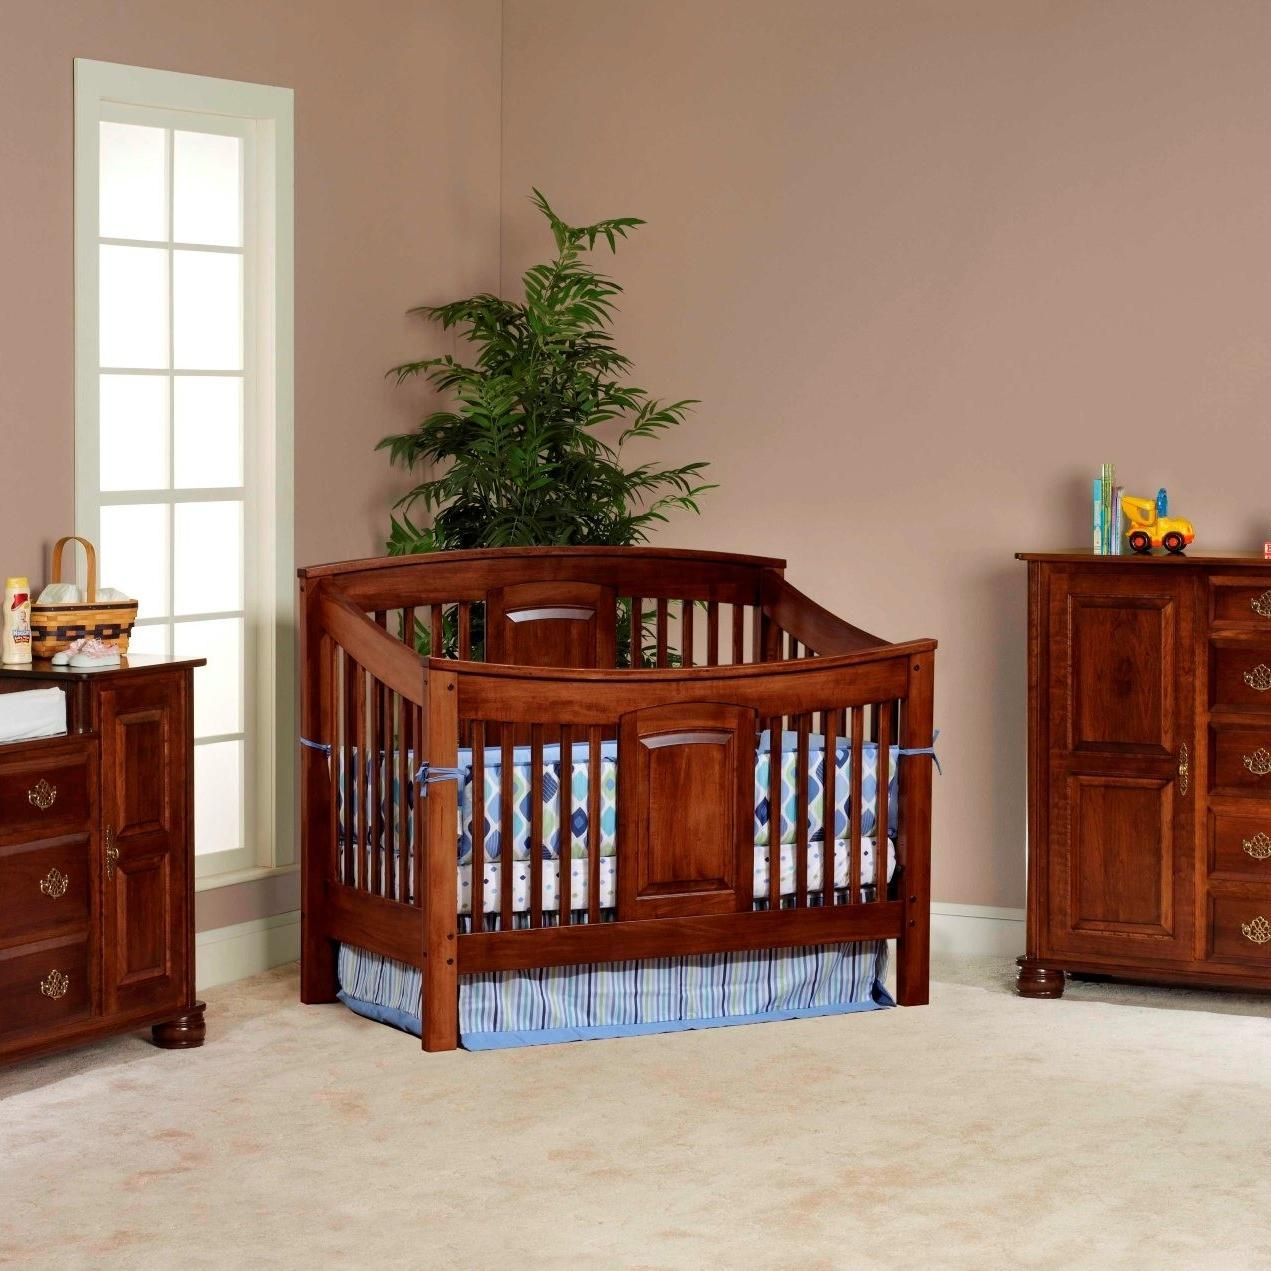 Amish crib for sale - Celebrity Baby Cribs Home Sleeping Amish Baby Cribs Celebrity Crib